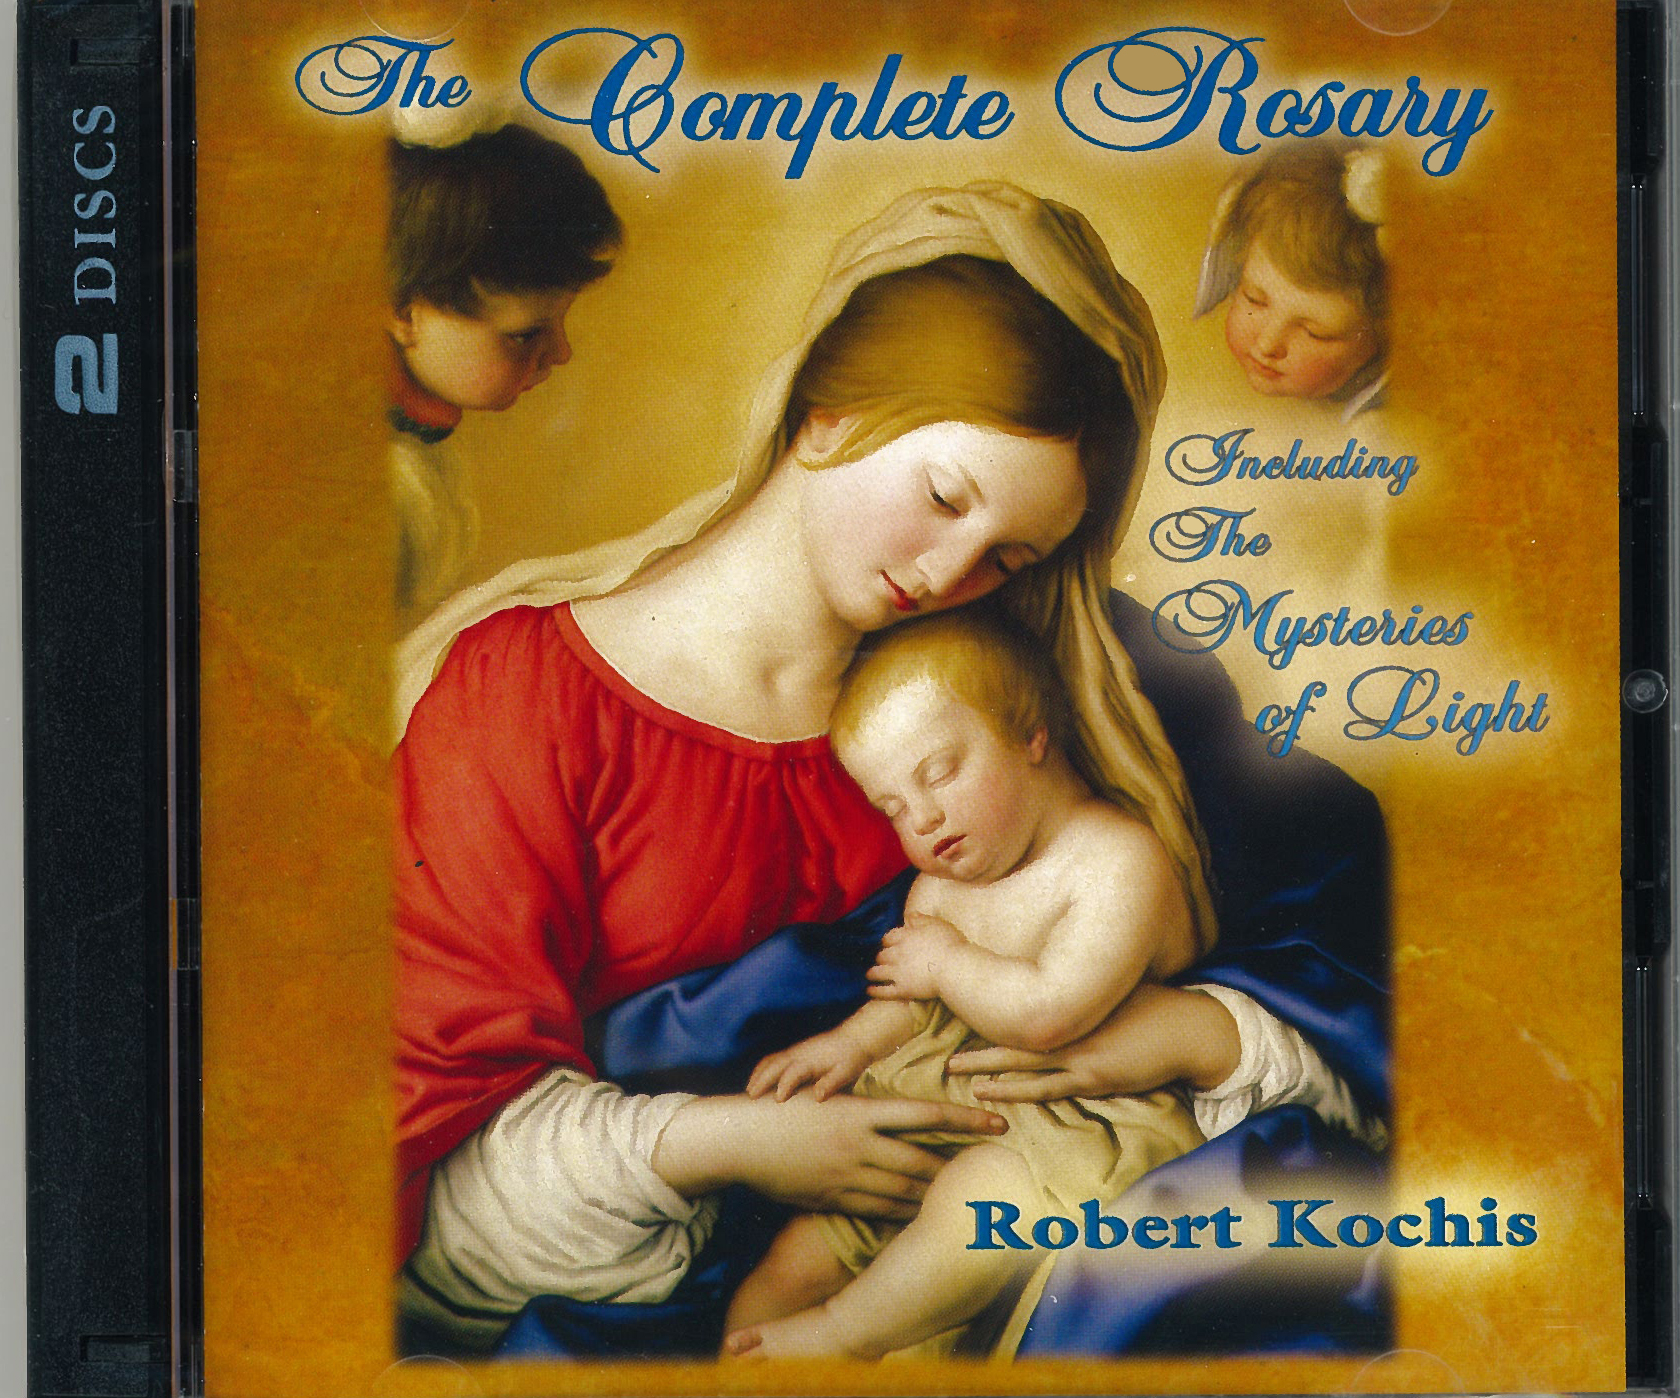 The Complete Rosary with Robert Kochis 88-5911011052